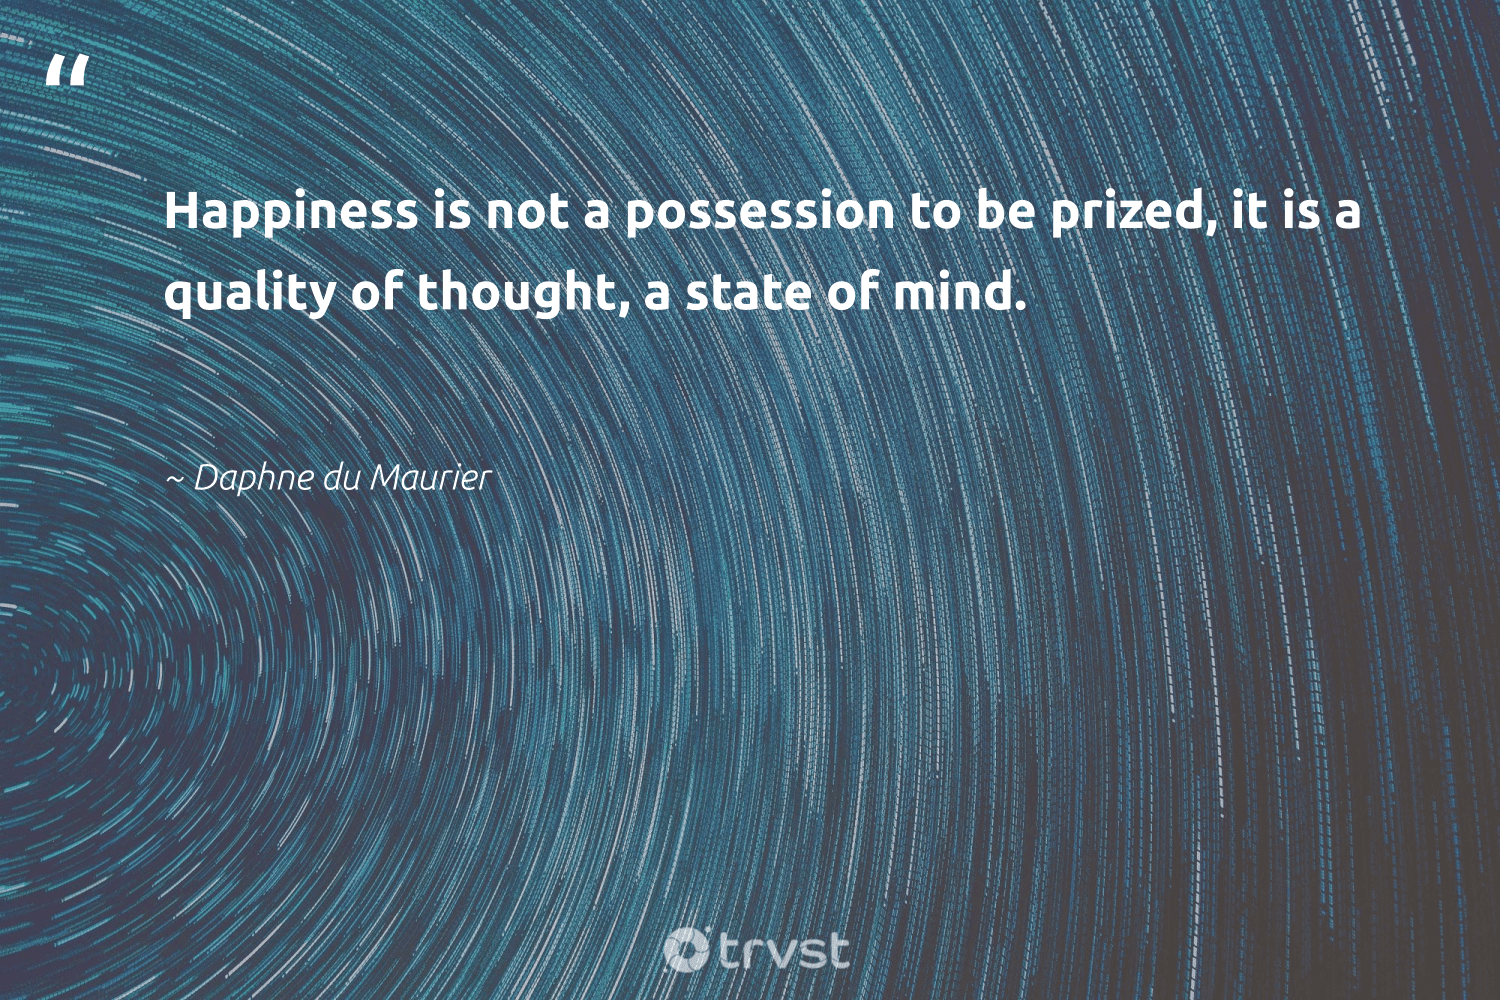 """""""Happiness is not a possession to be prized, it is a quality of thought, a state of mind.""""  - Daphne du Maurier #trvst #quotes #happiness #begreat #dogood #mindset #dotherightthing #togetherwecan #socialchange #changemakers #impact #nevergiveup"""